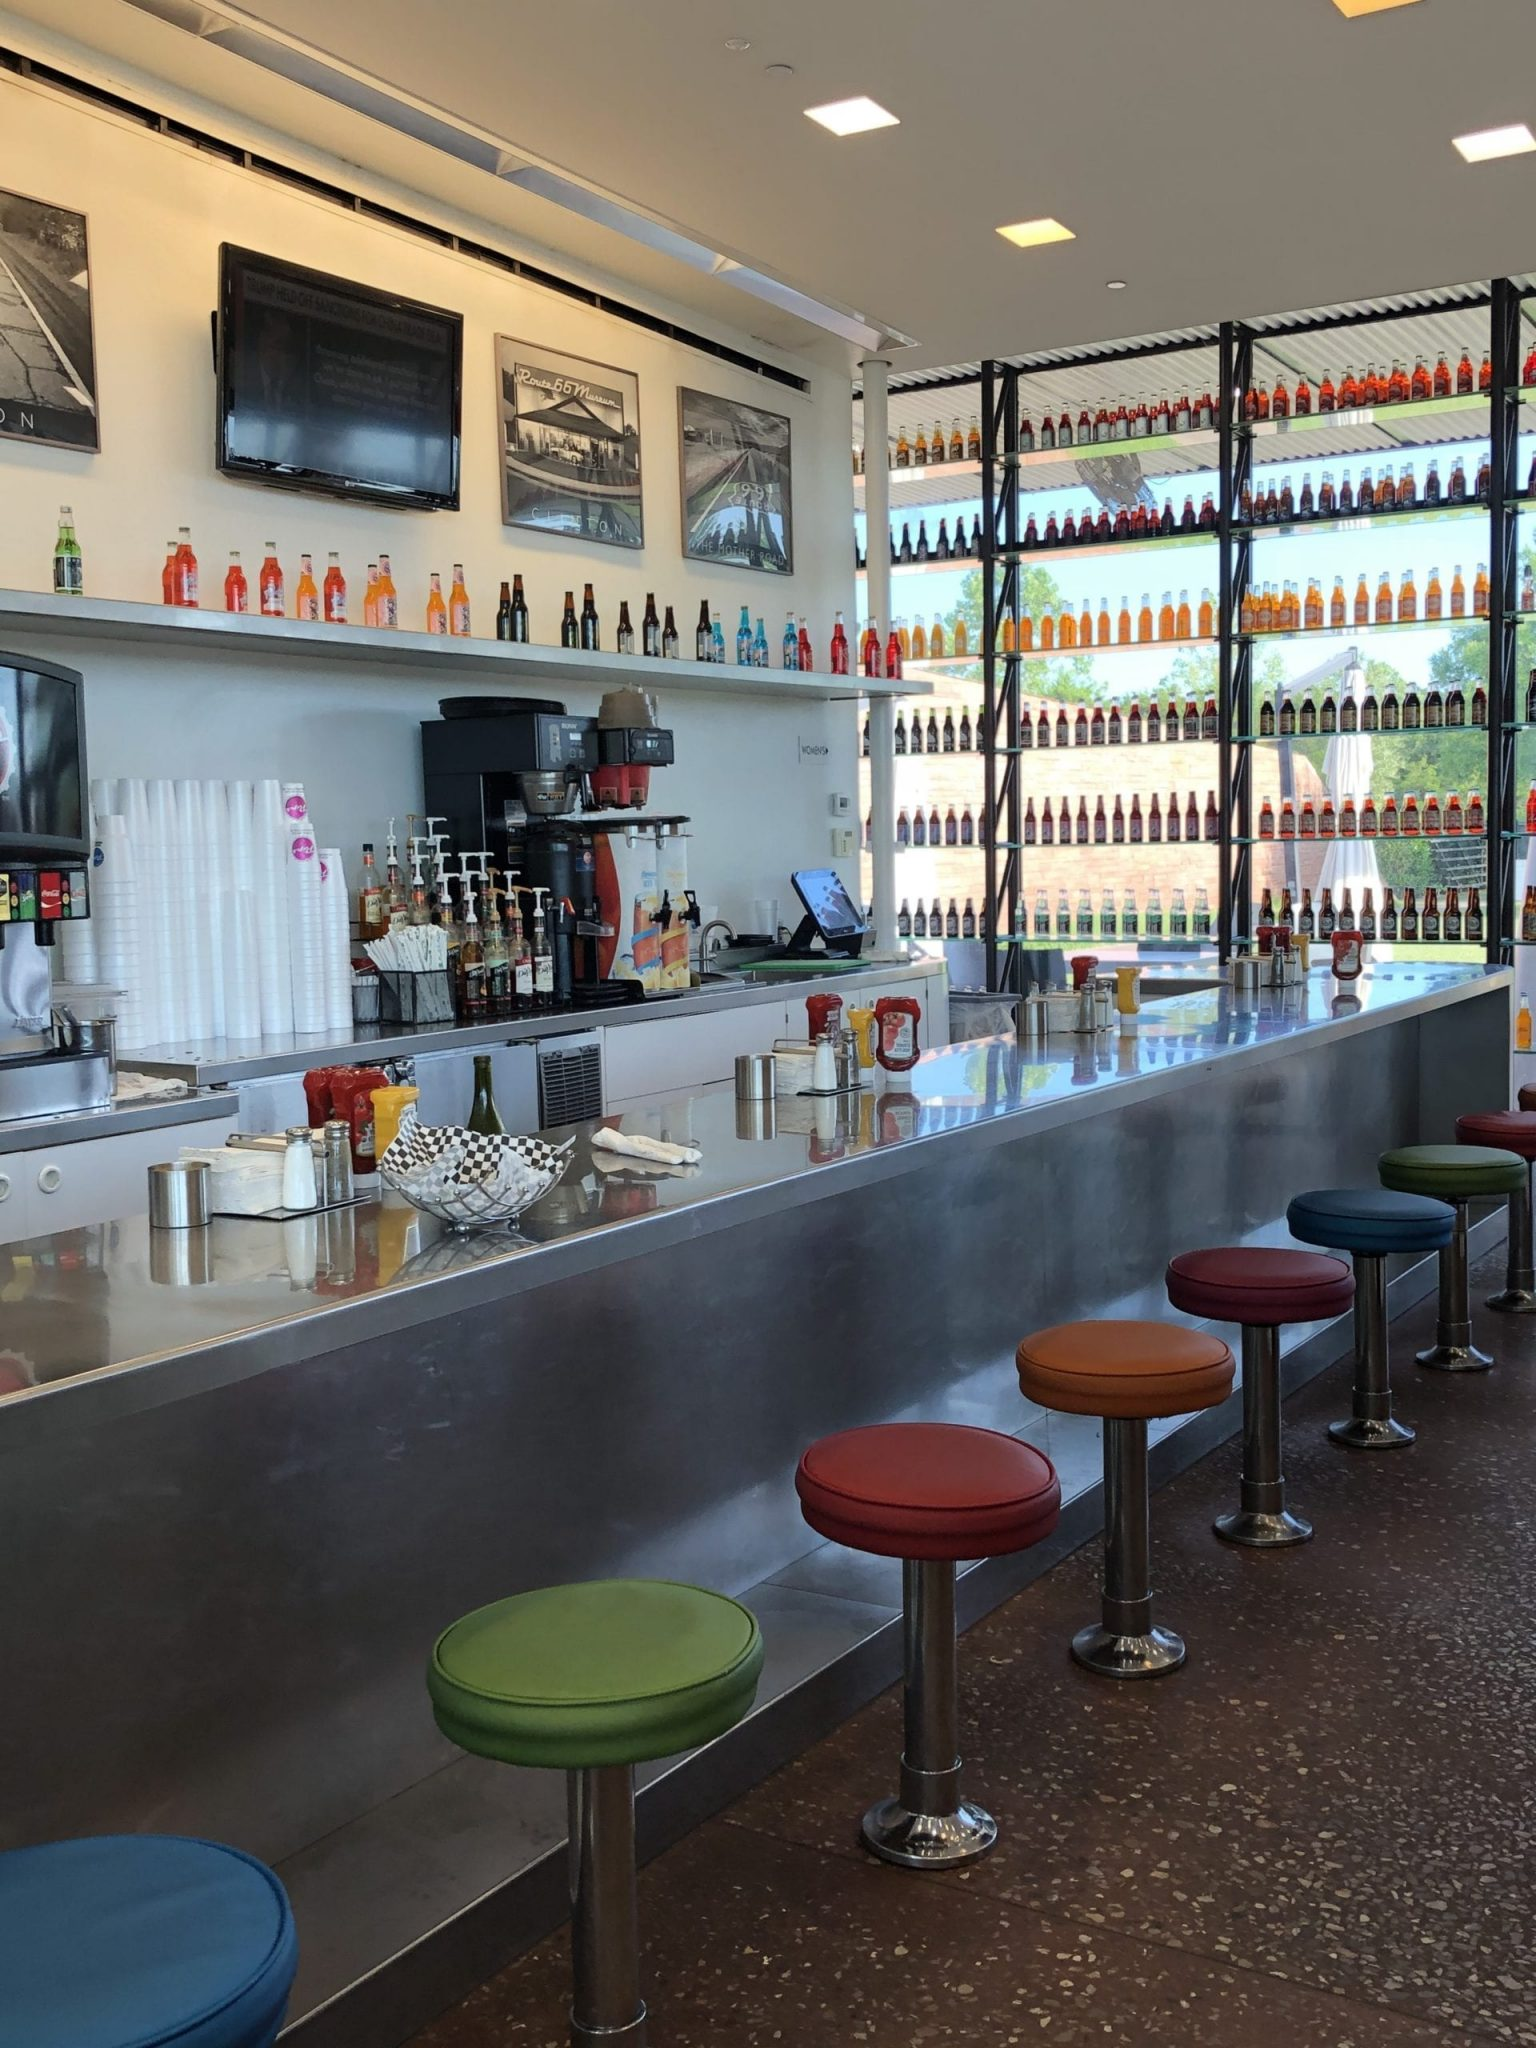 Route 66 diners Pops